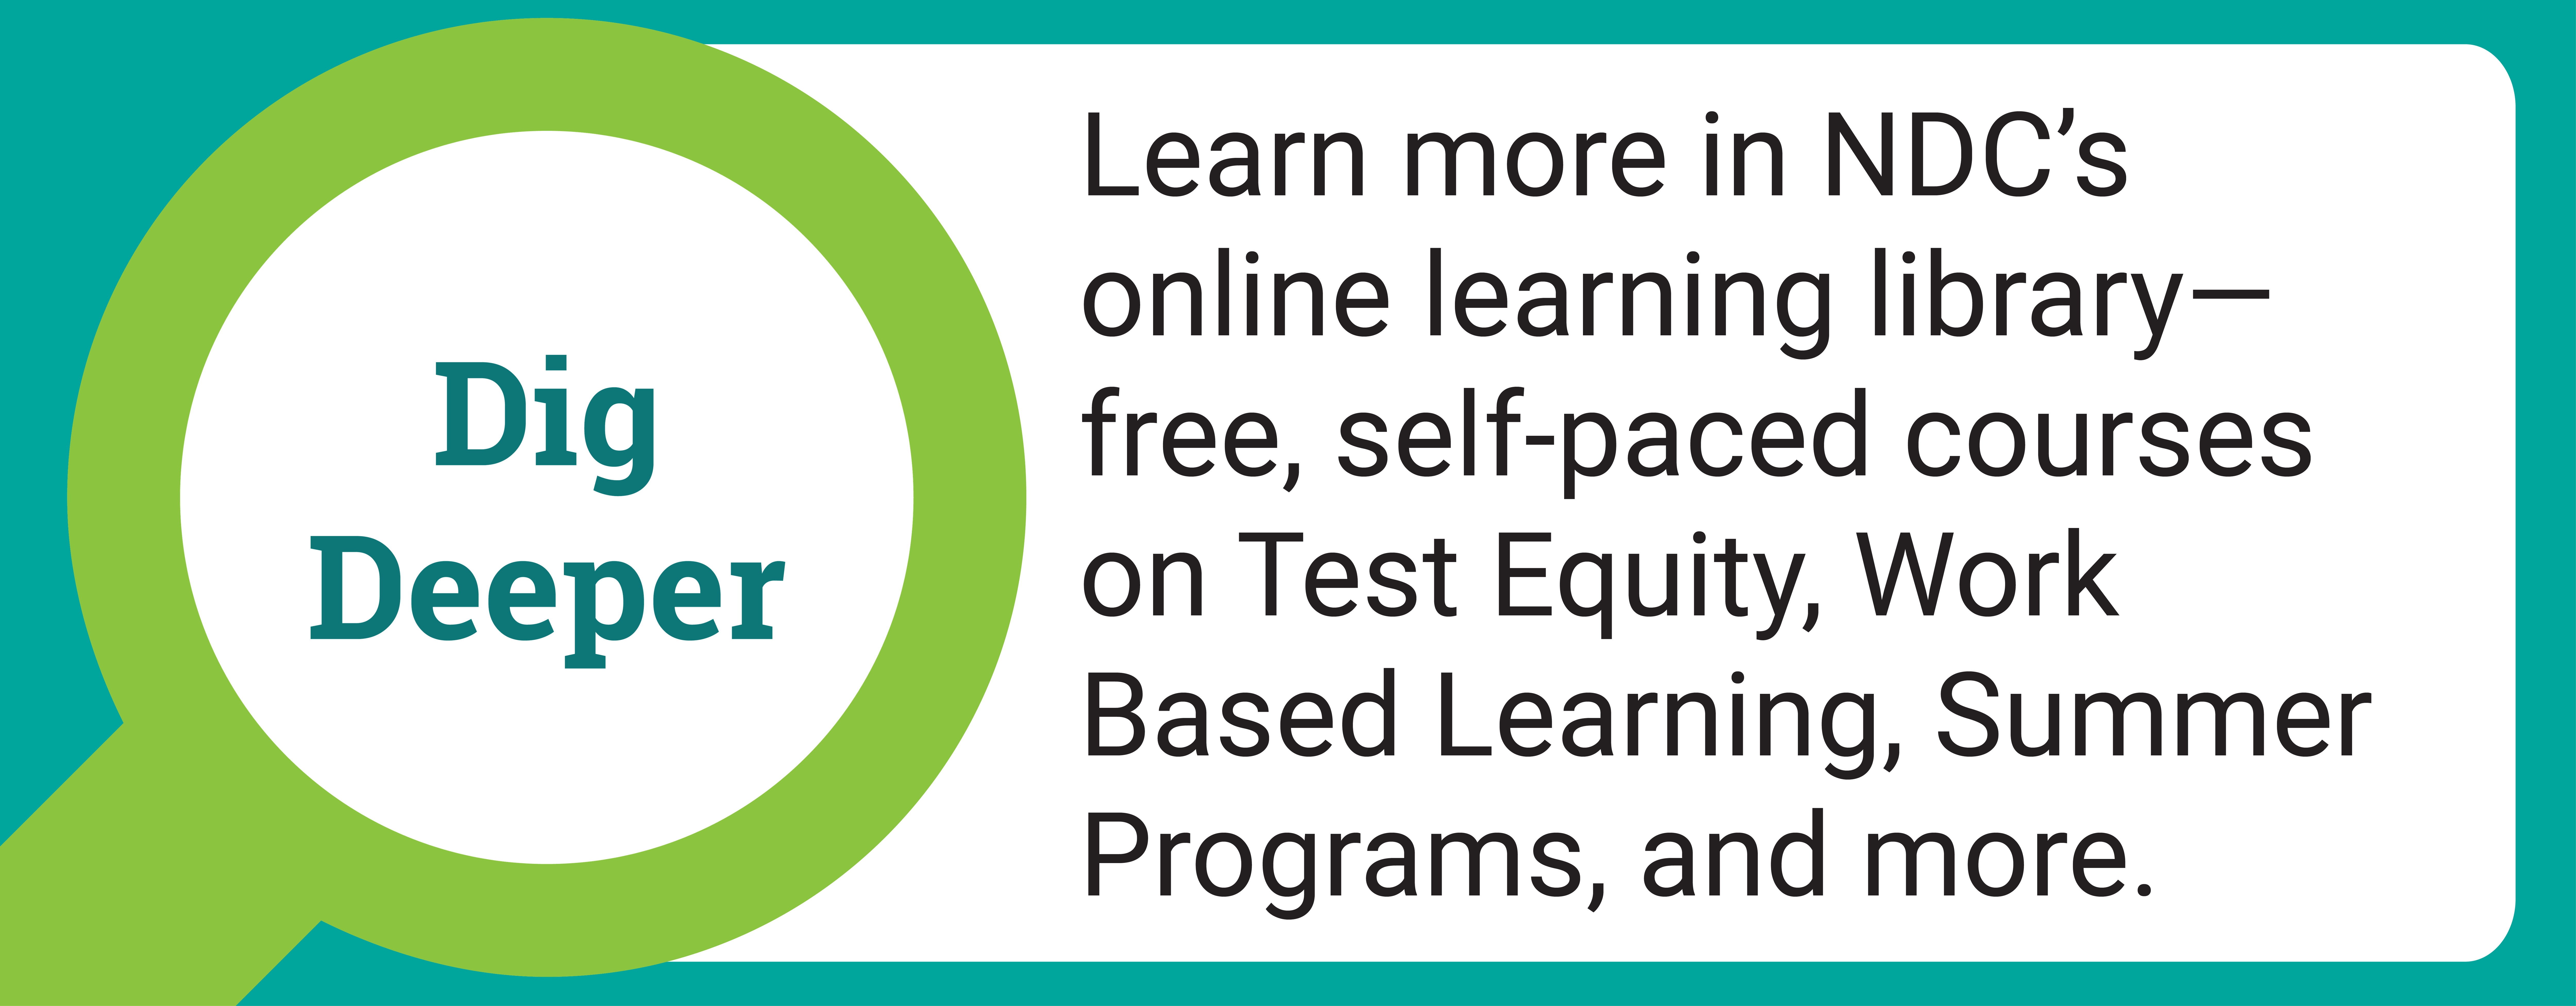 Text: Dig Deeper. Learn more in NDC's online learning library — free, self-paced courses on Test Equity, Work Based Learning, Summer Programs, and more, with teal border and lime green magnifying glass.